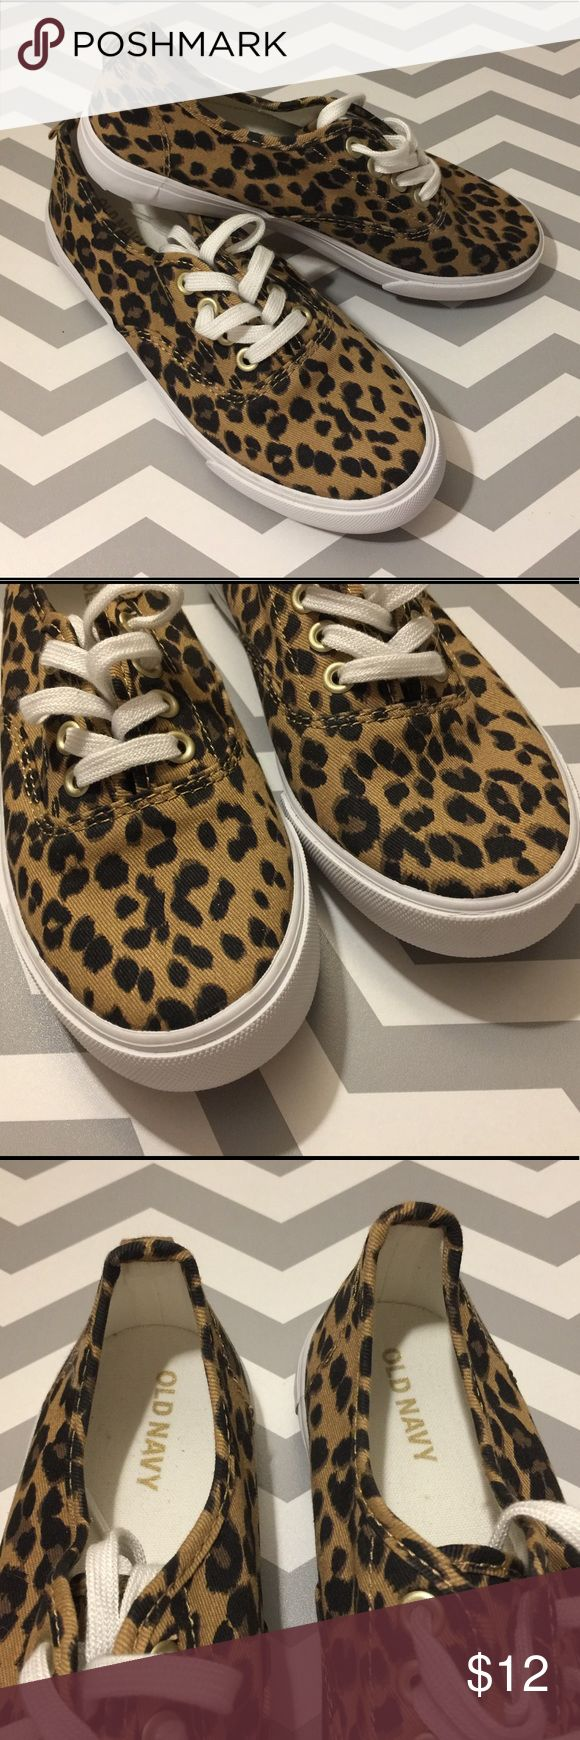 Leopard-Print Twill Sneakers - Girls Size 1 NWOT - Cute Old Navy leopard print sneakers in a Girls size 1. Twill upper, with lace-up front and all-over leopard pattern. Old Navy Shoes Sneakers